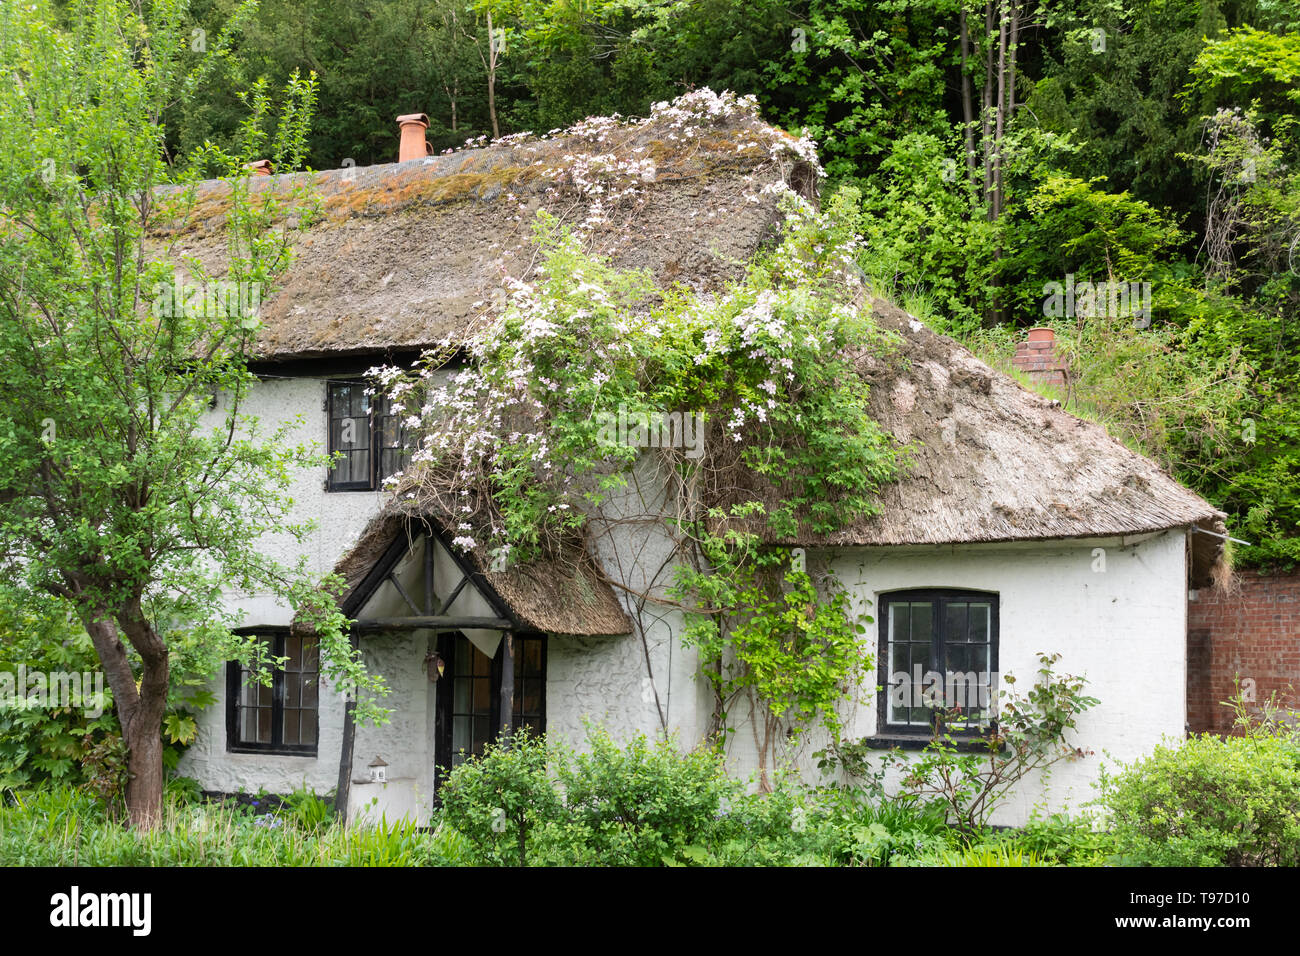 pretty-thatched-cottage-covered-with-flowering-clematis-in-pangbourne-in-berkshire-uk-during-may-T97D10.jpg